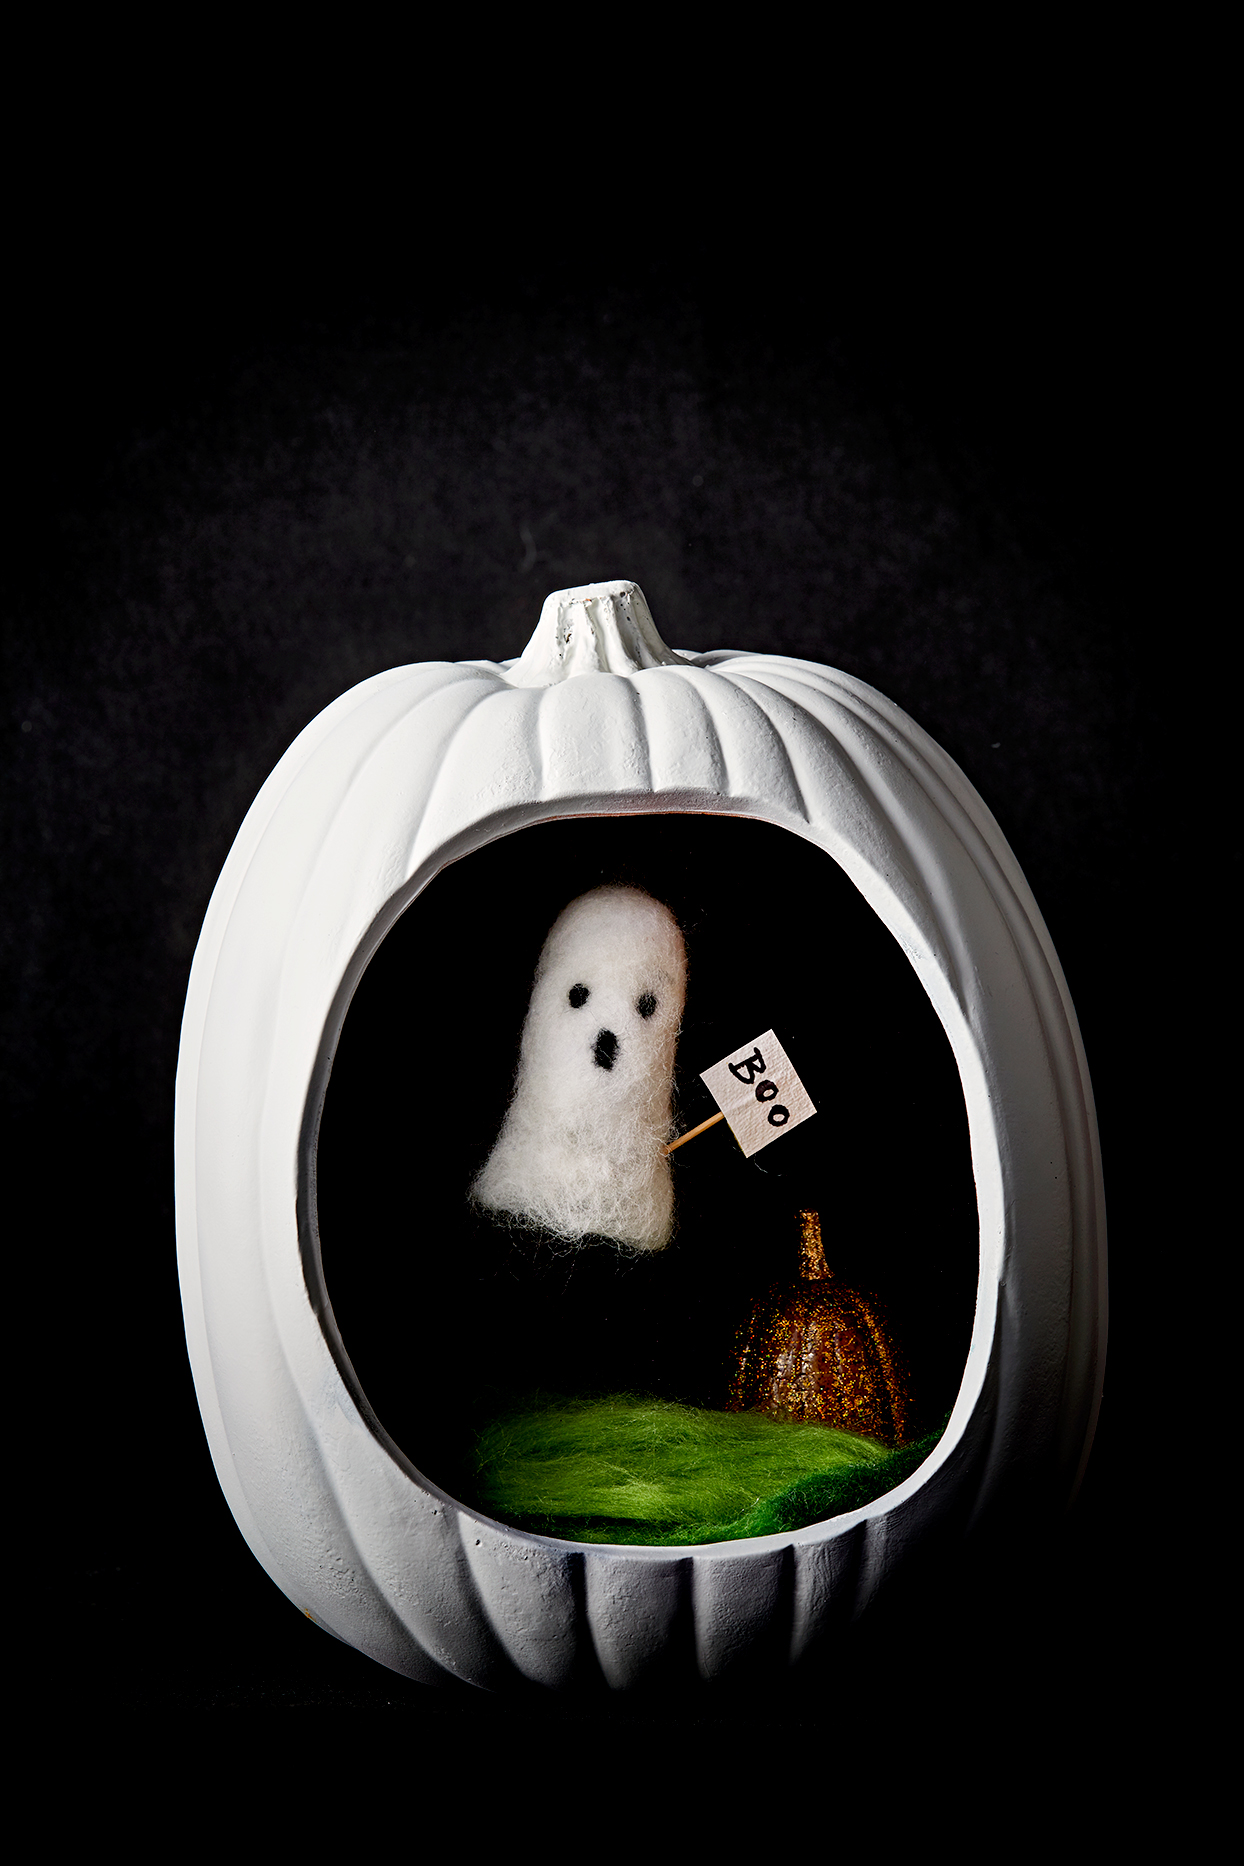 Ghost inside white pumpkin holding boo sign